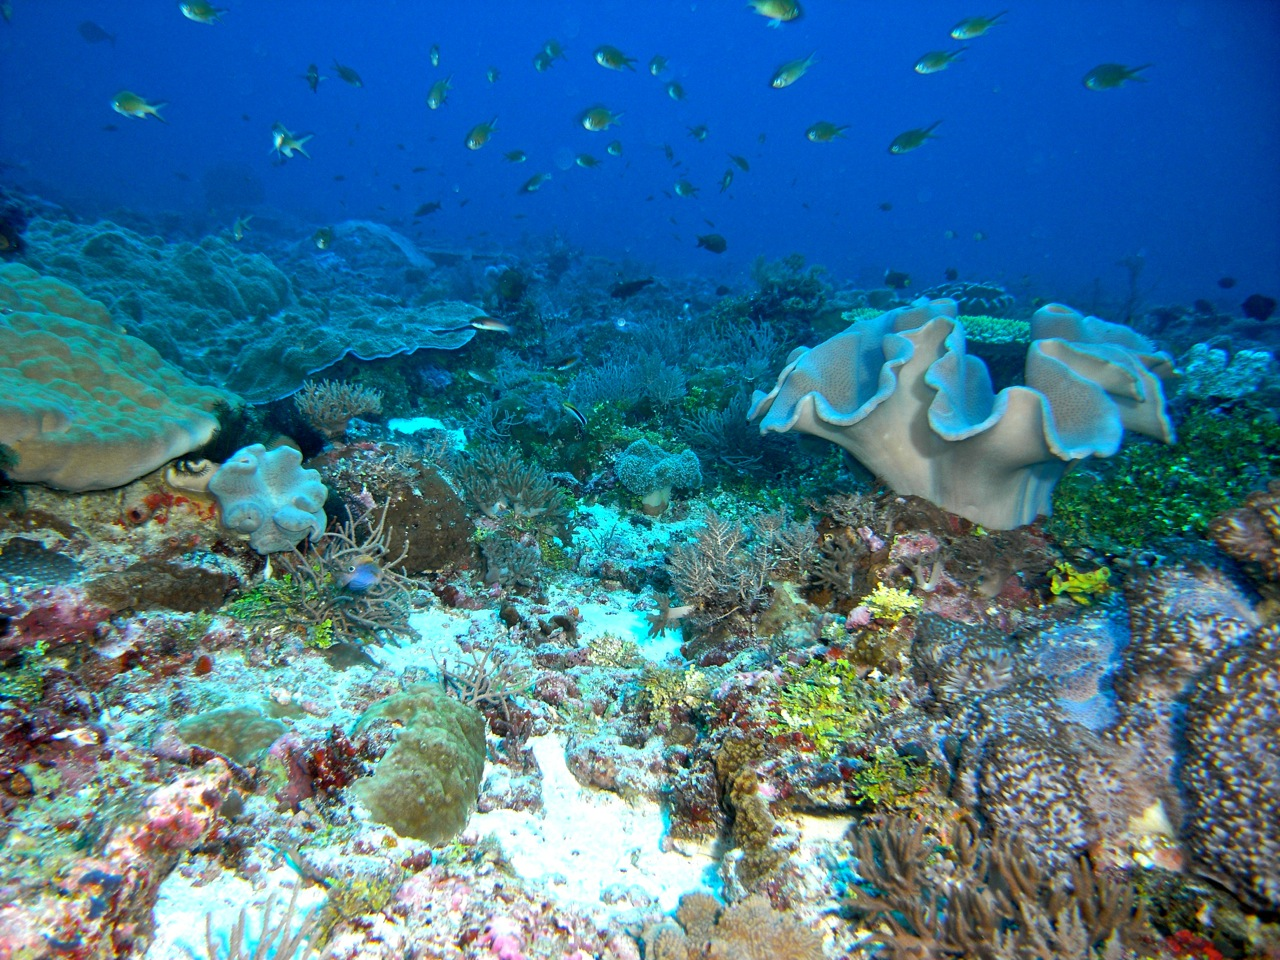 A view of corals and sponges on one of the Scott Reef plateaus, taken during a previous expedition.